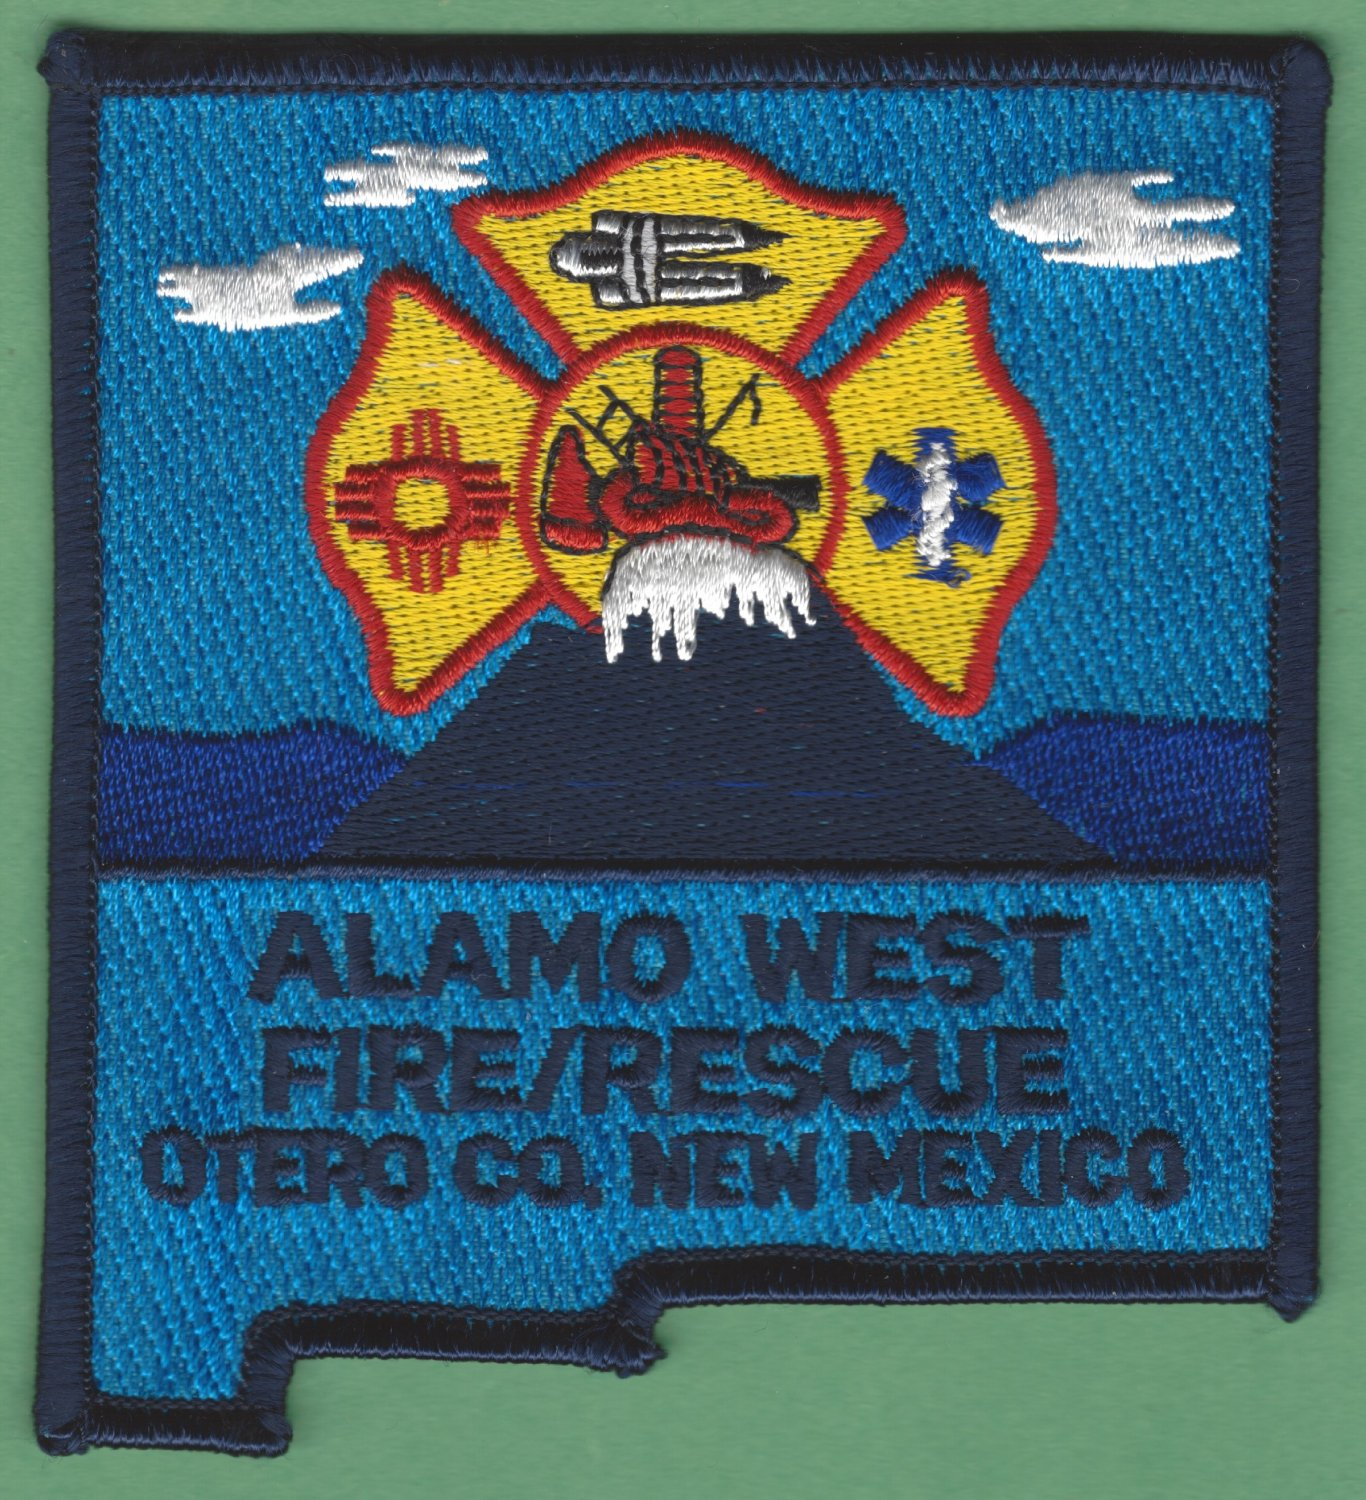 ALAMO WEST NEW MEXICO FIRE RESCUE PATCH